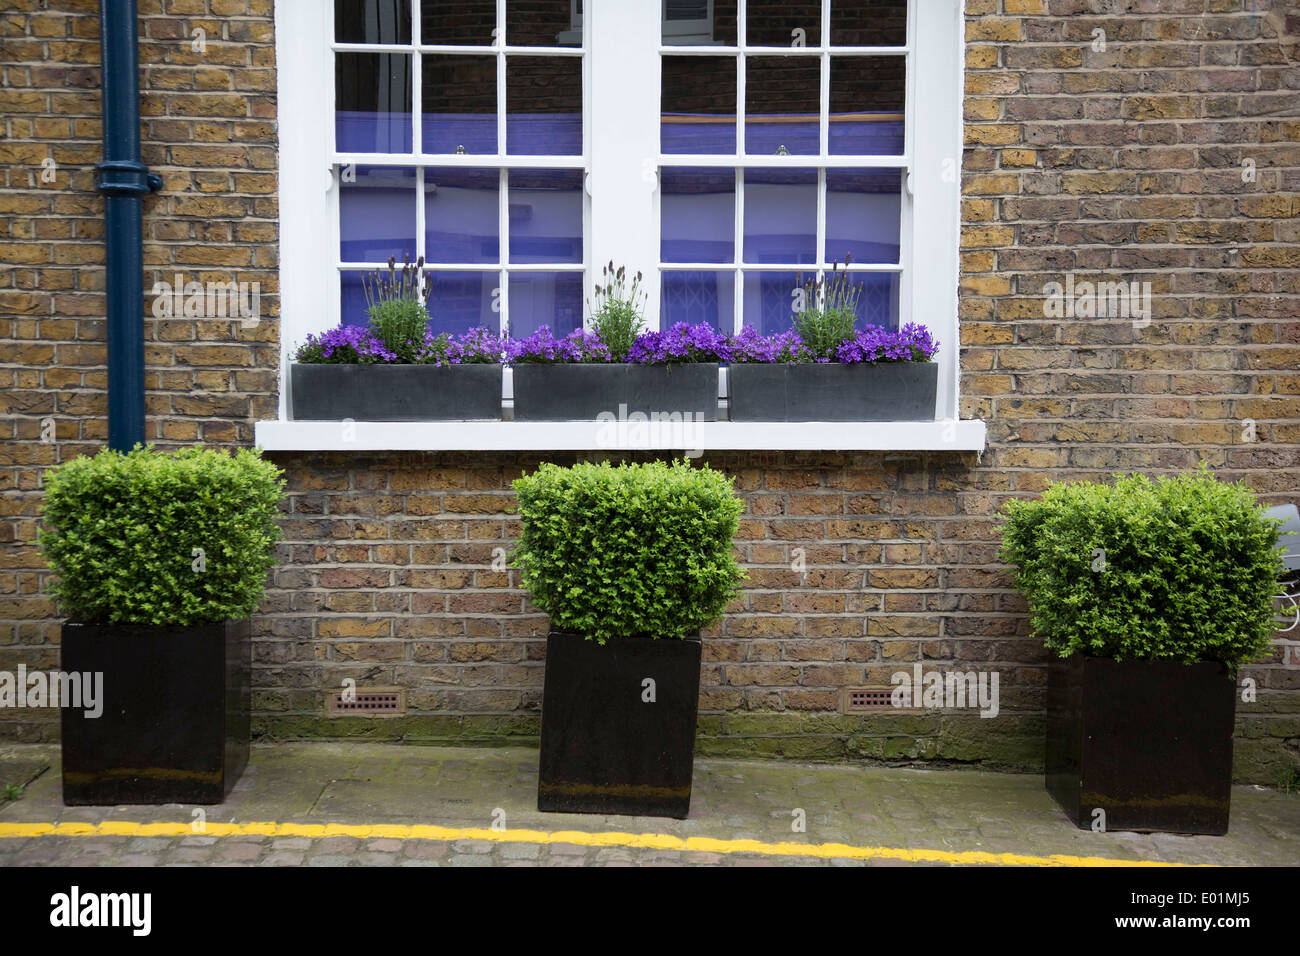 Three Small Potted Bushes Outside The Front Of A House On